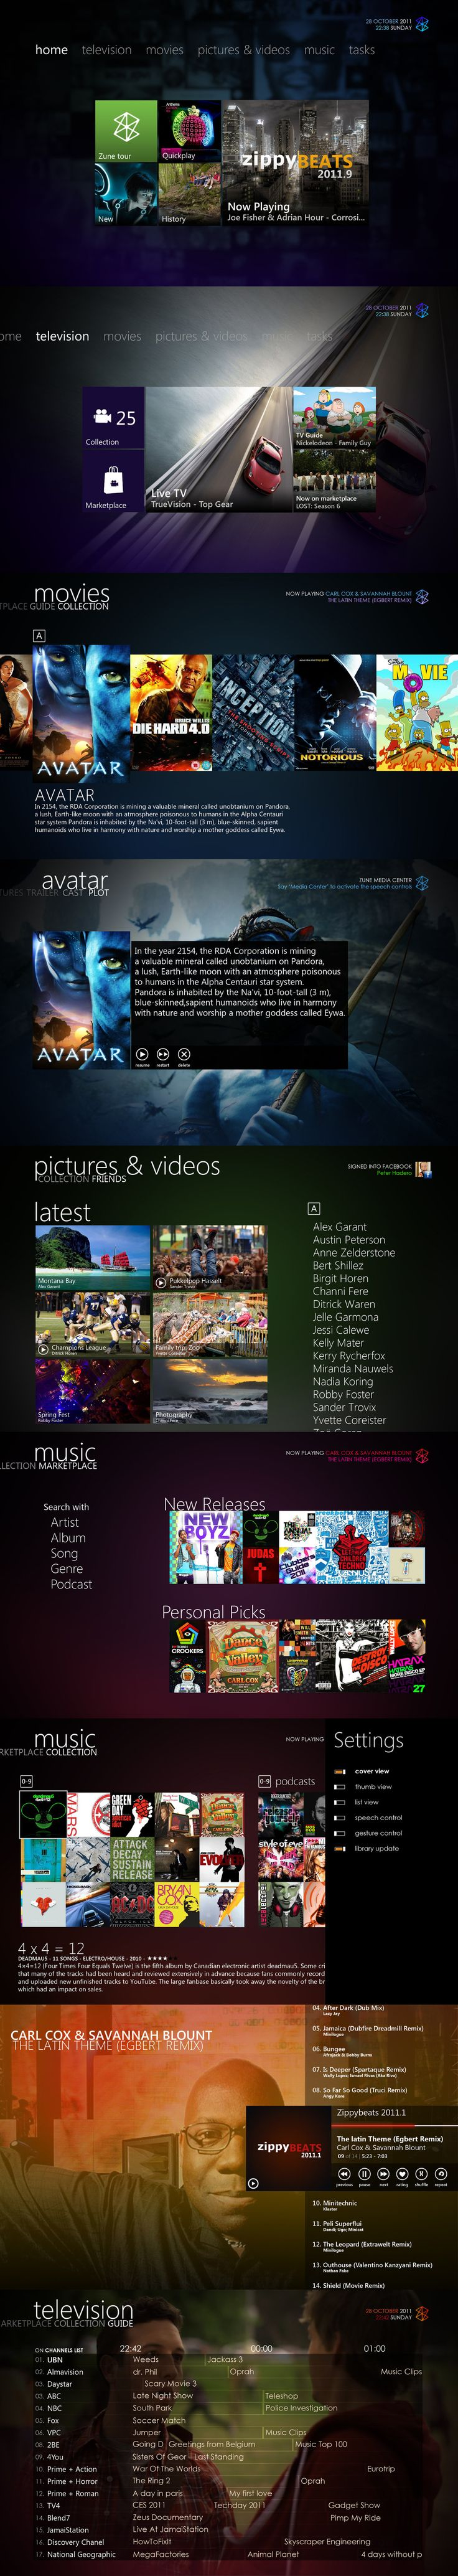 Zune Media Center 3.1 by ~Bonkietje on deviantART